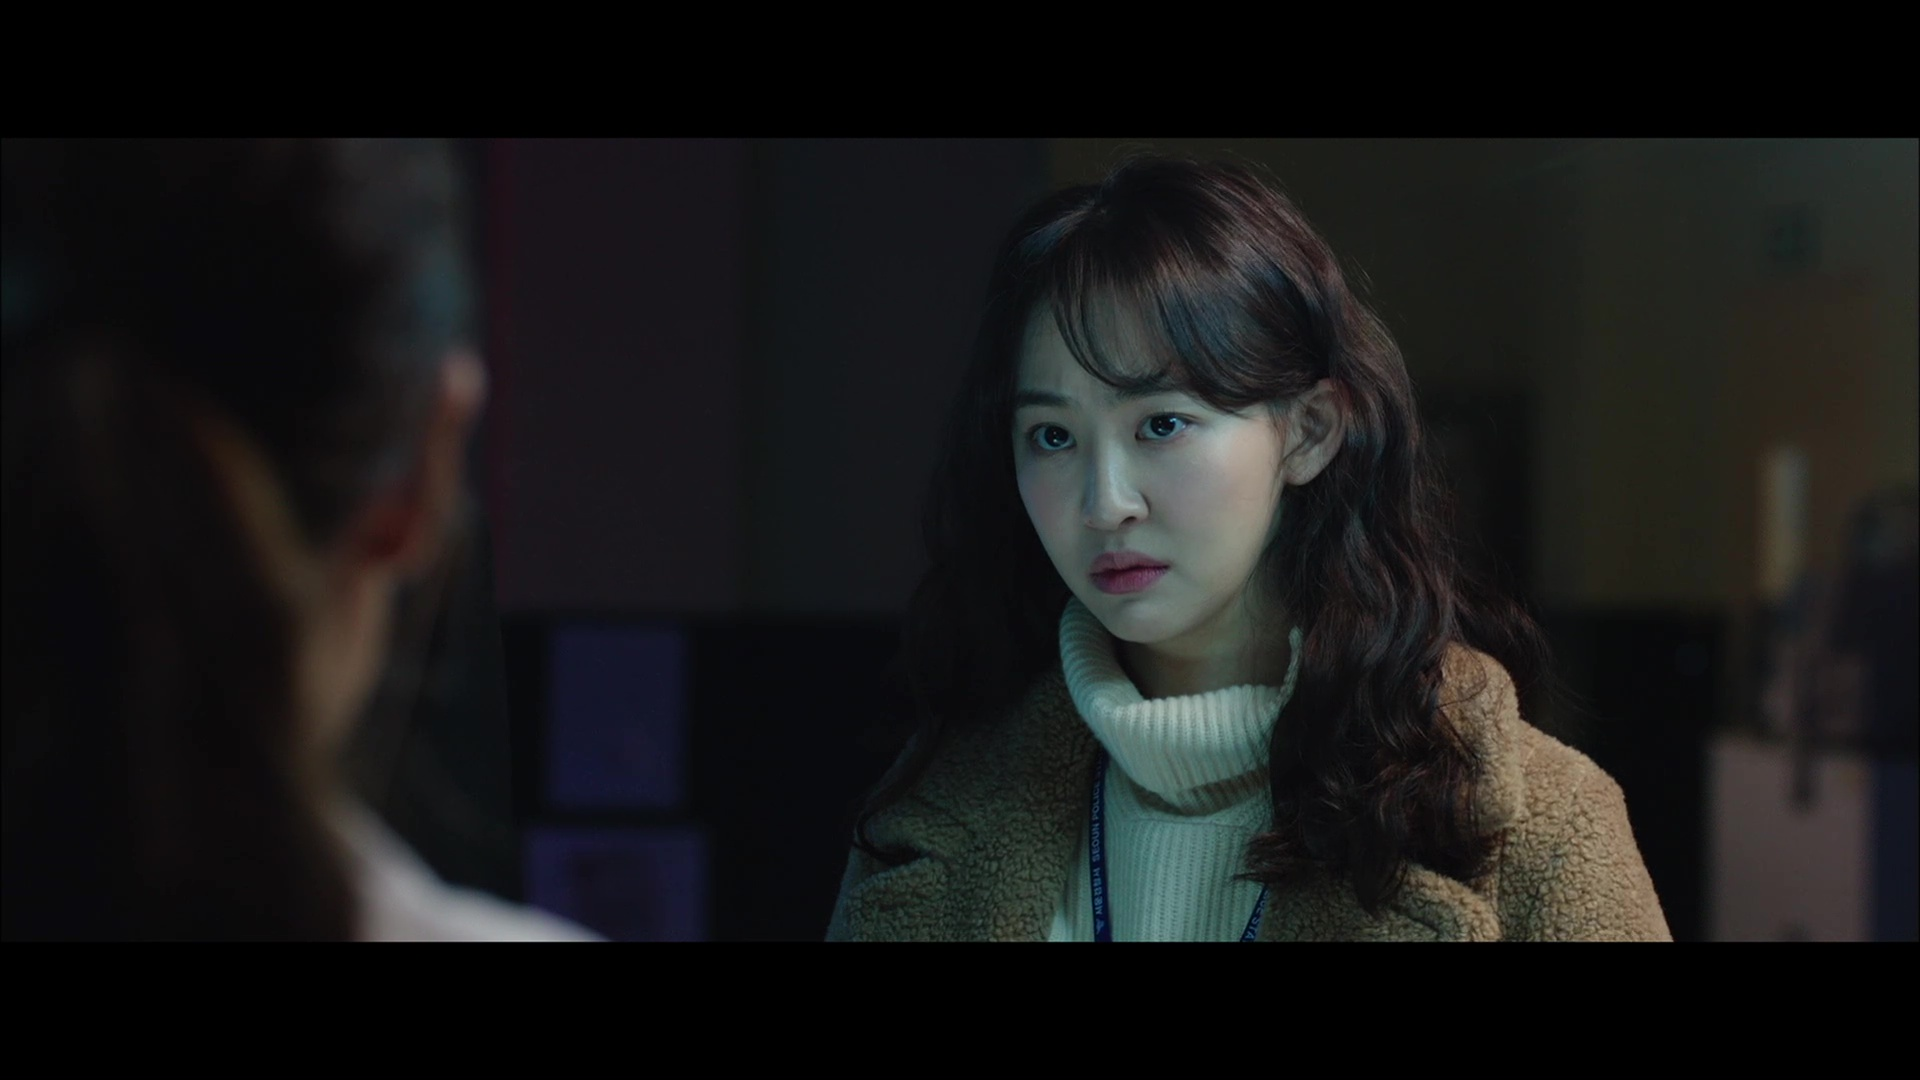 He is Psychometric Review